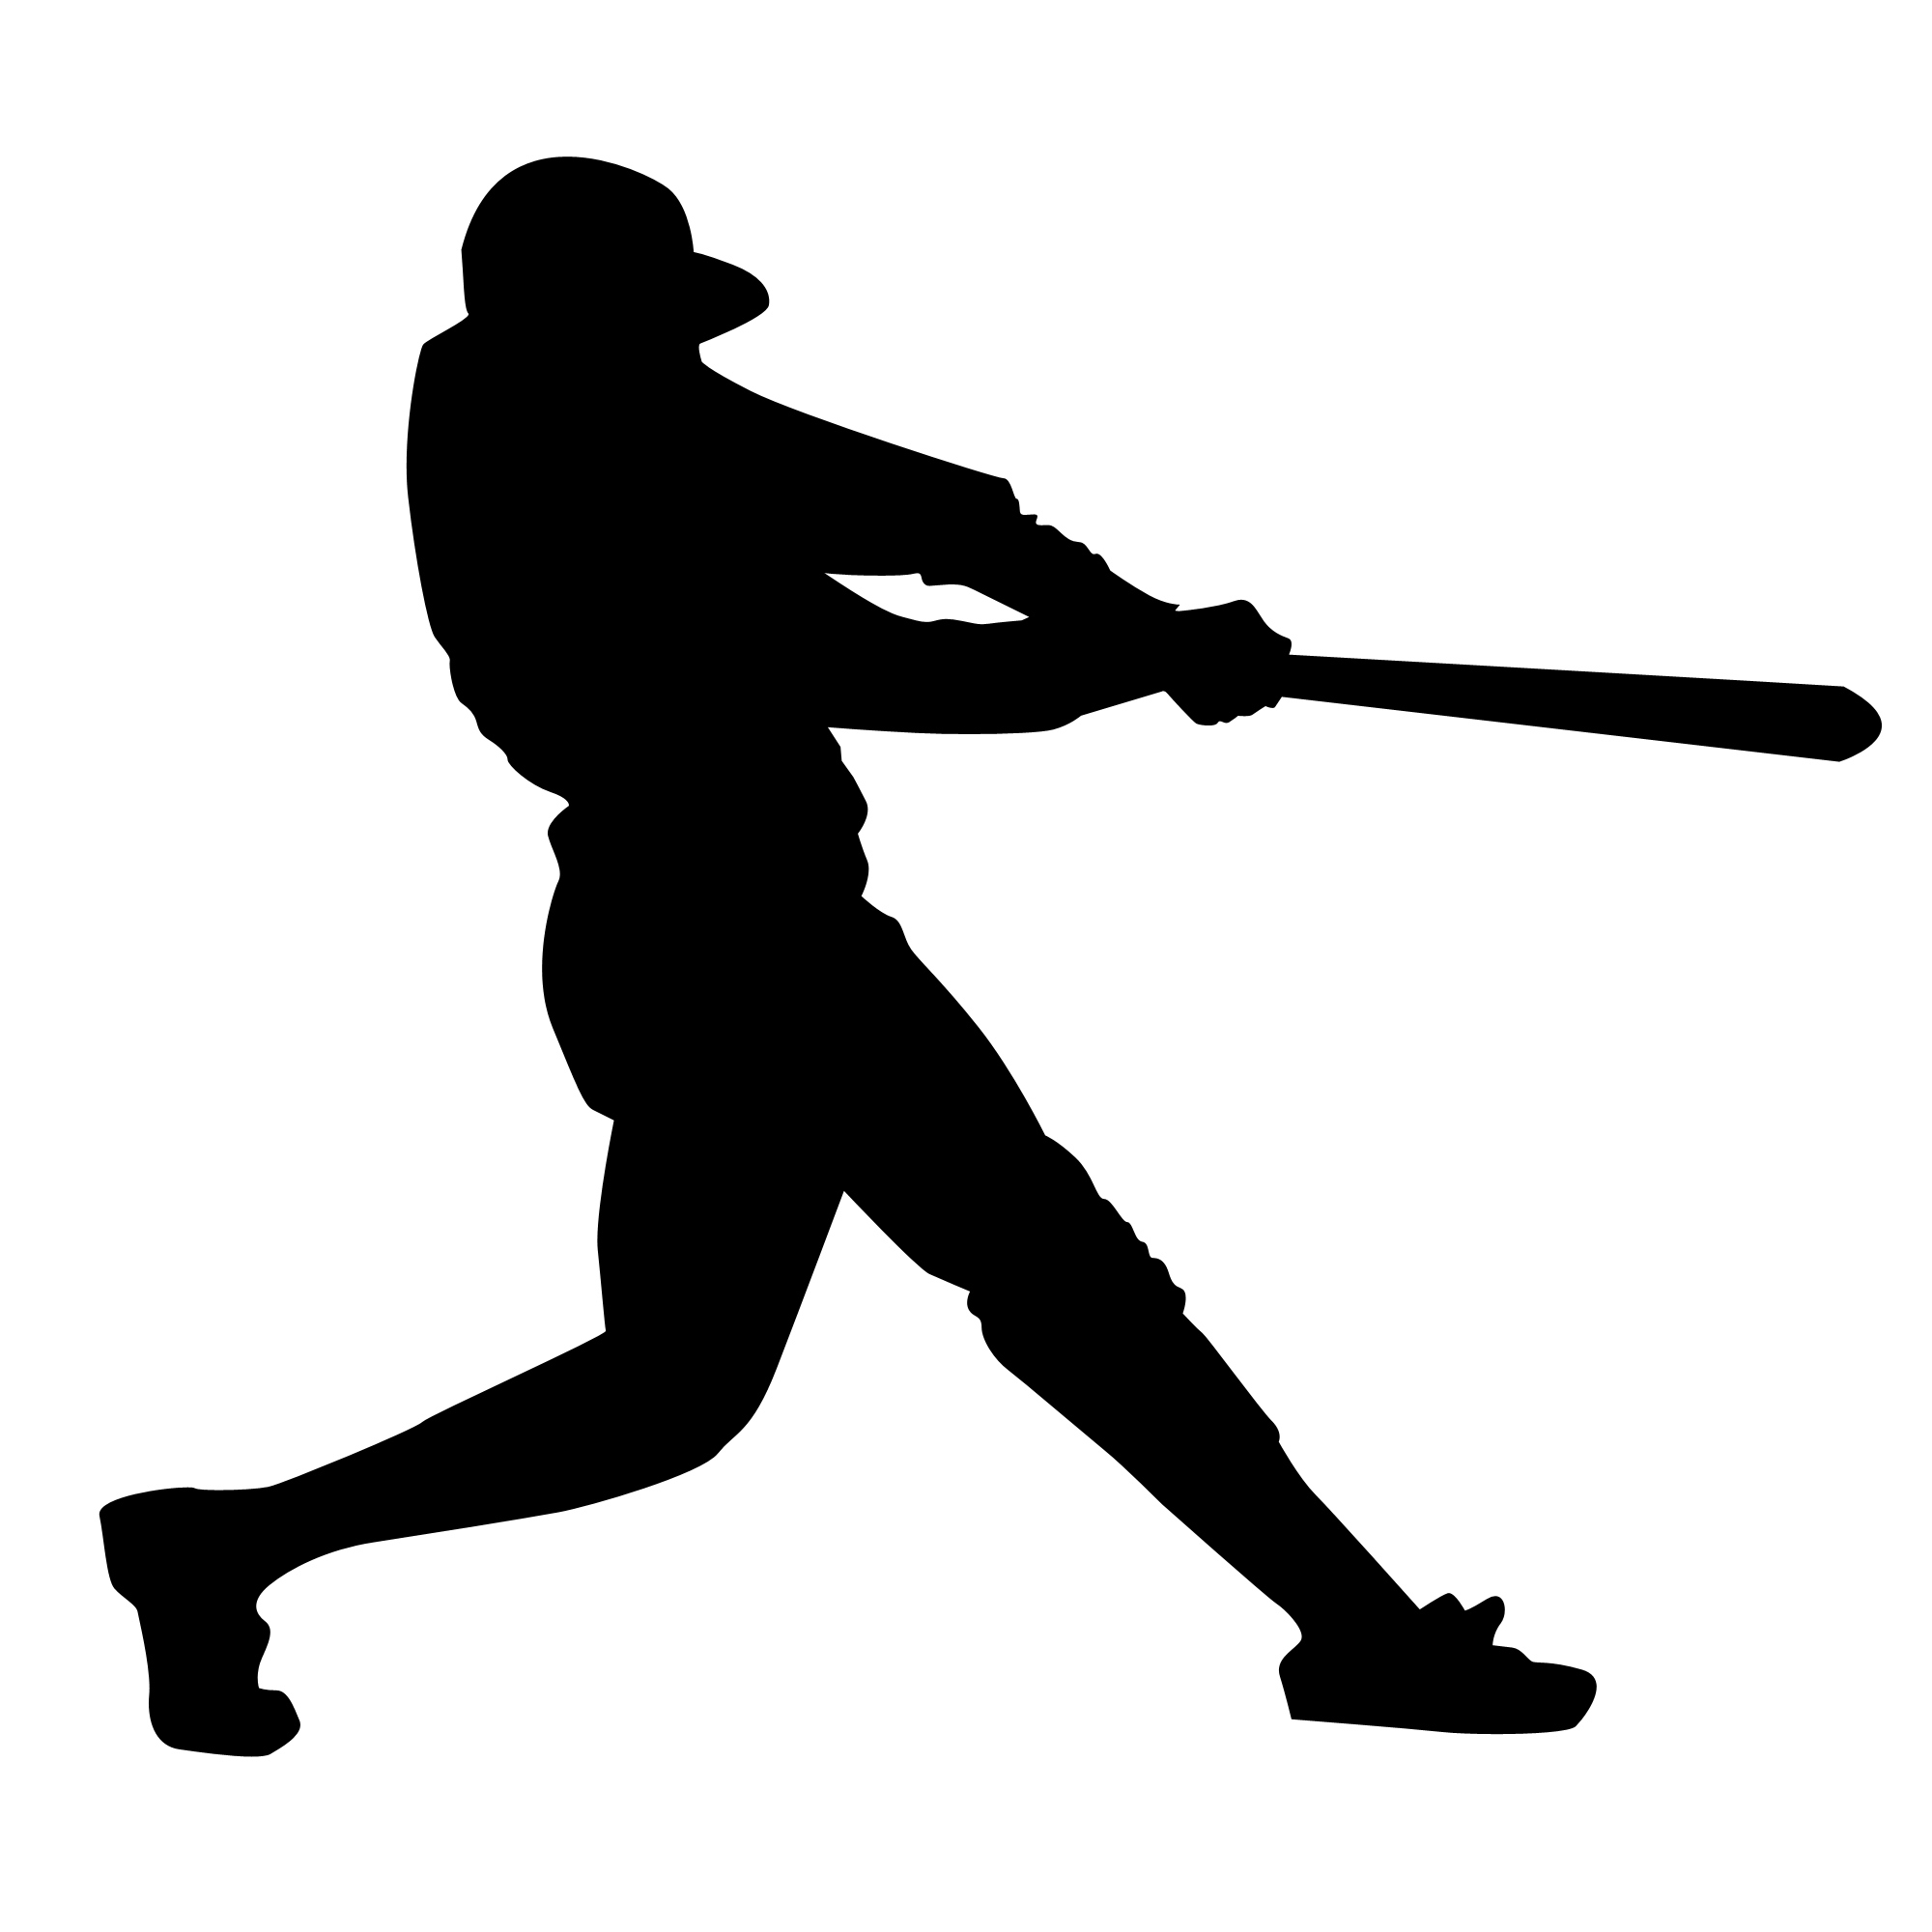 Black silhouette of a baseball player